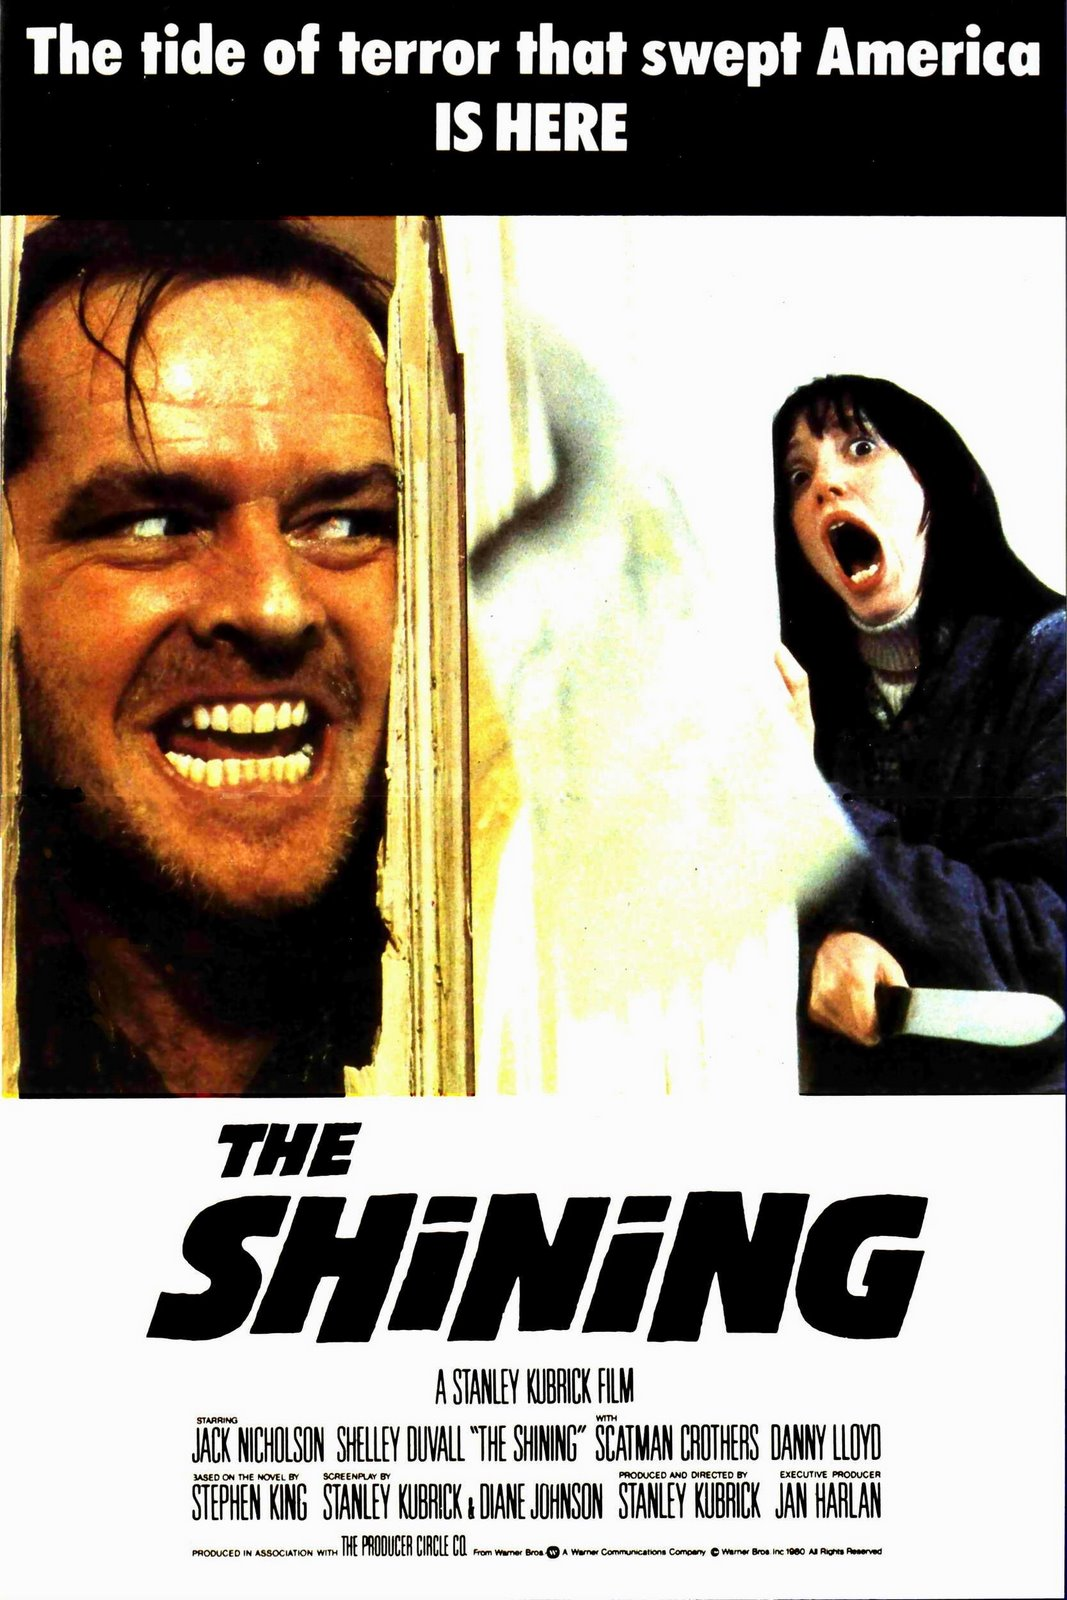 PARC AT MIDNIGHT: THE SHINING